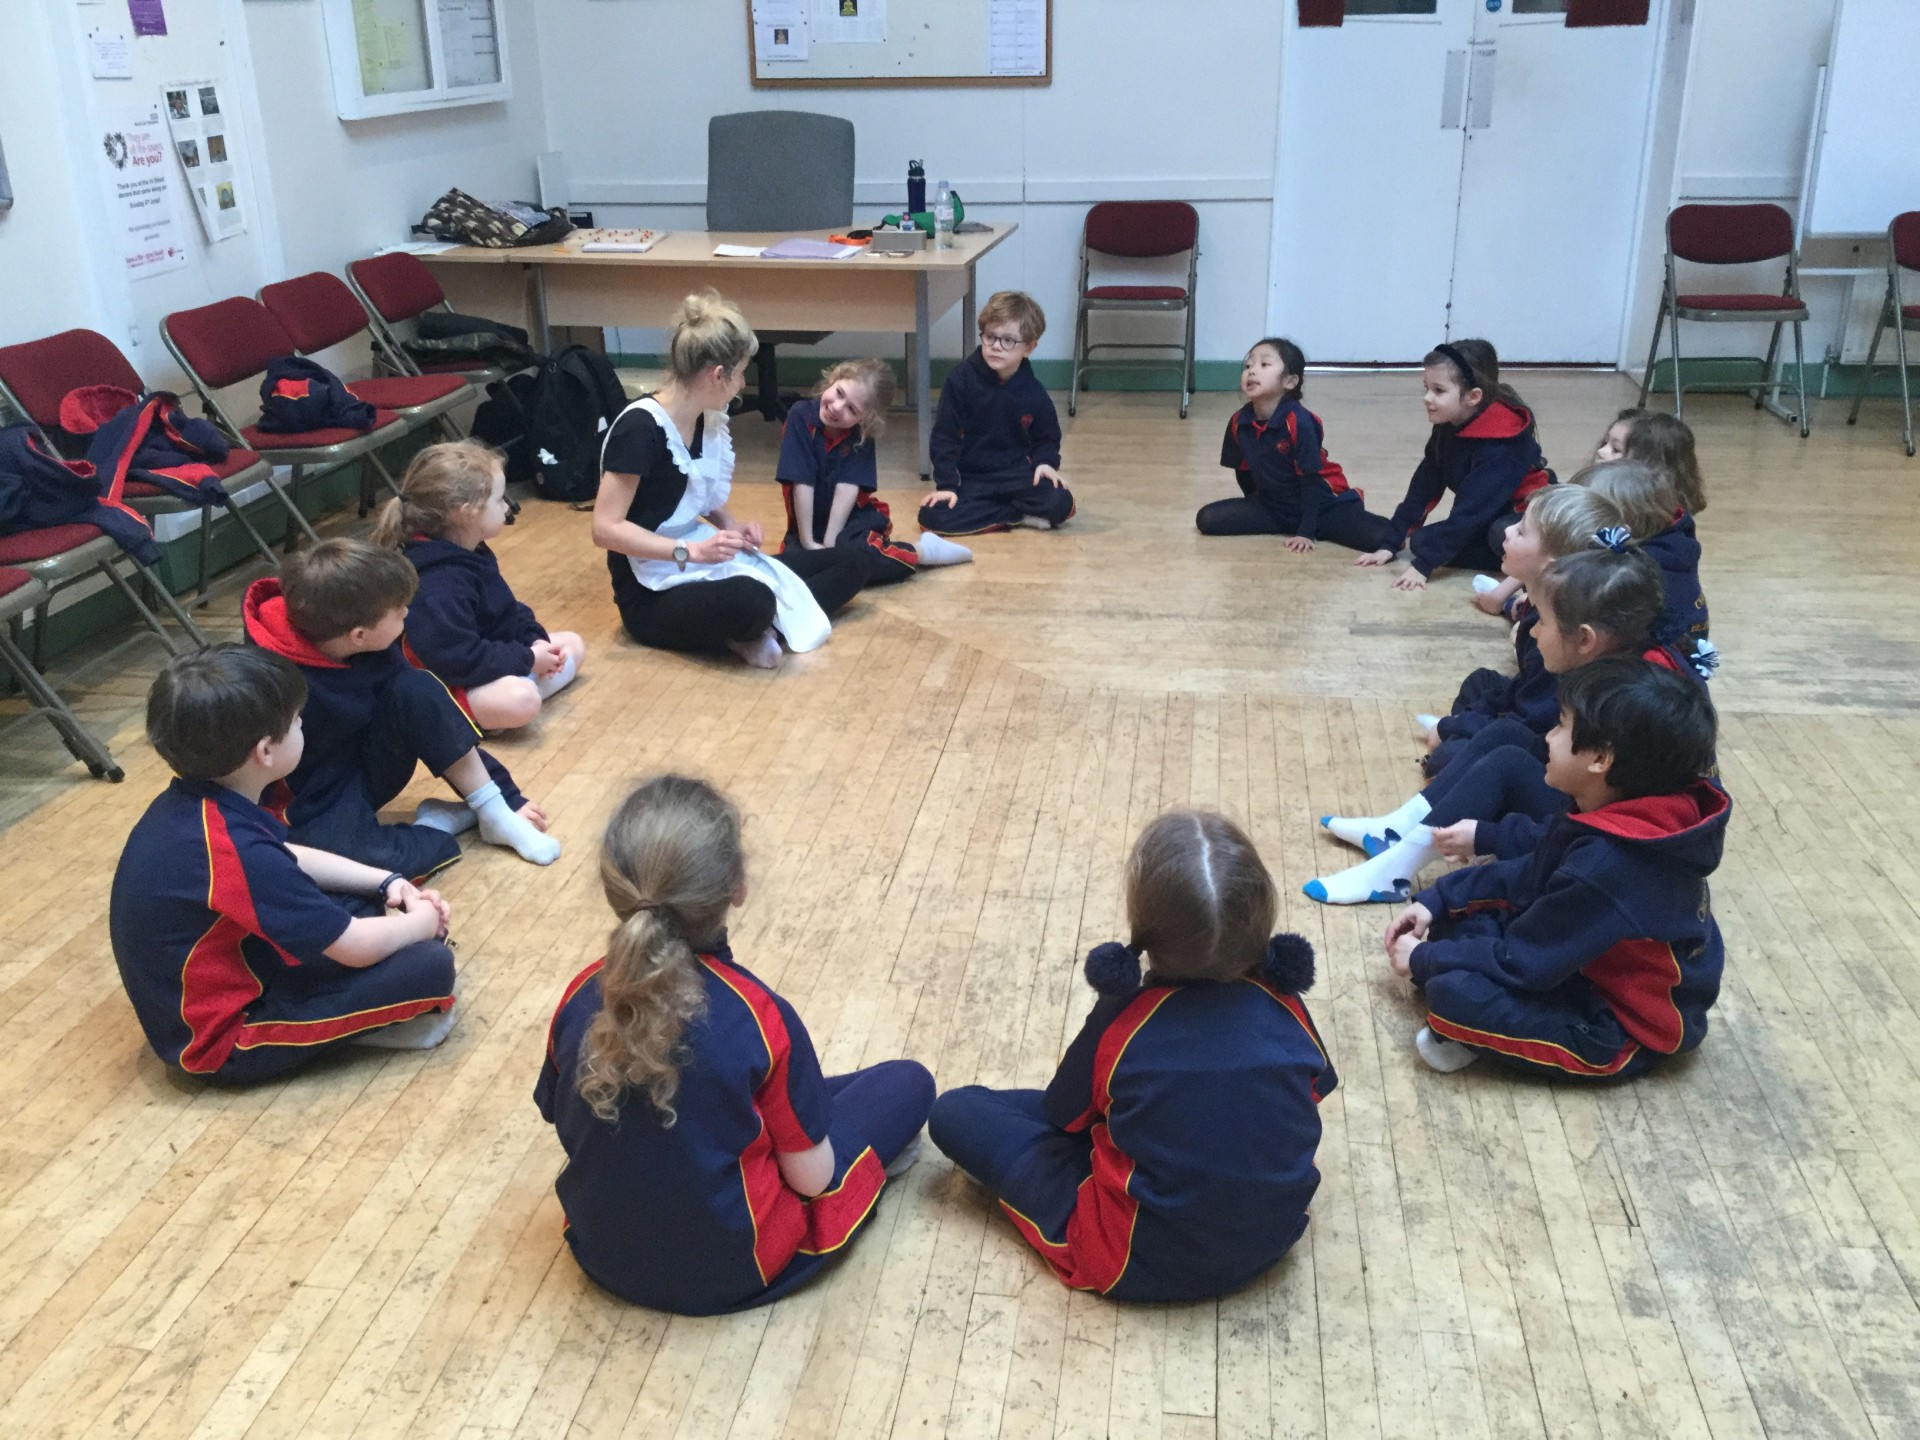 1H Drama Workshop